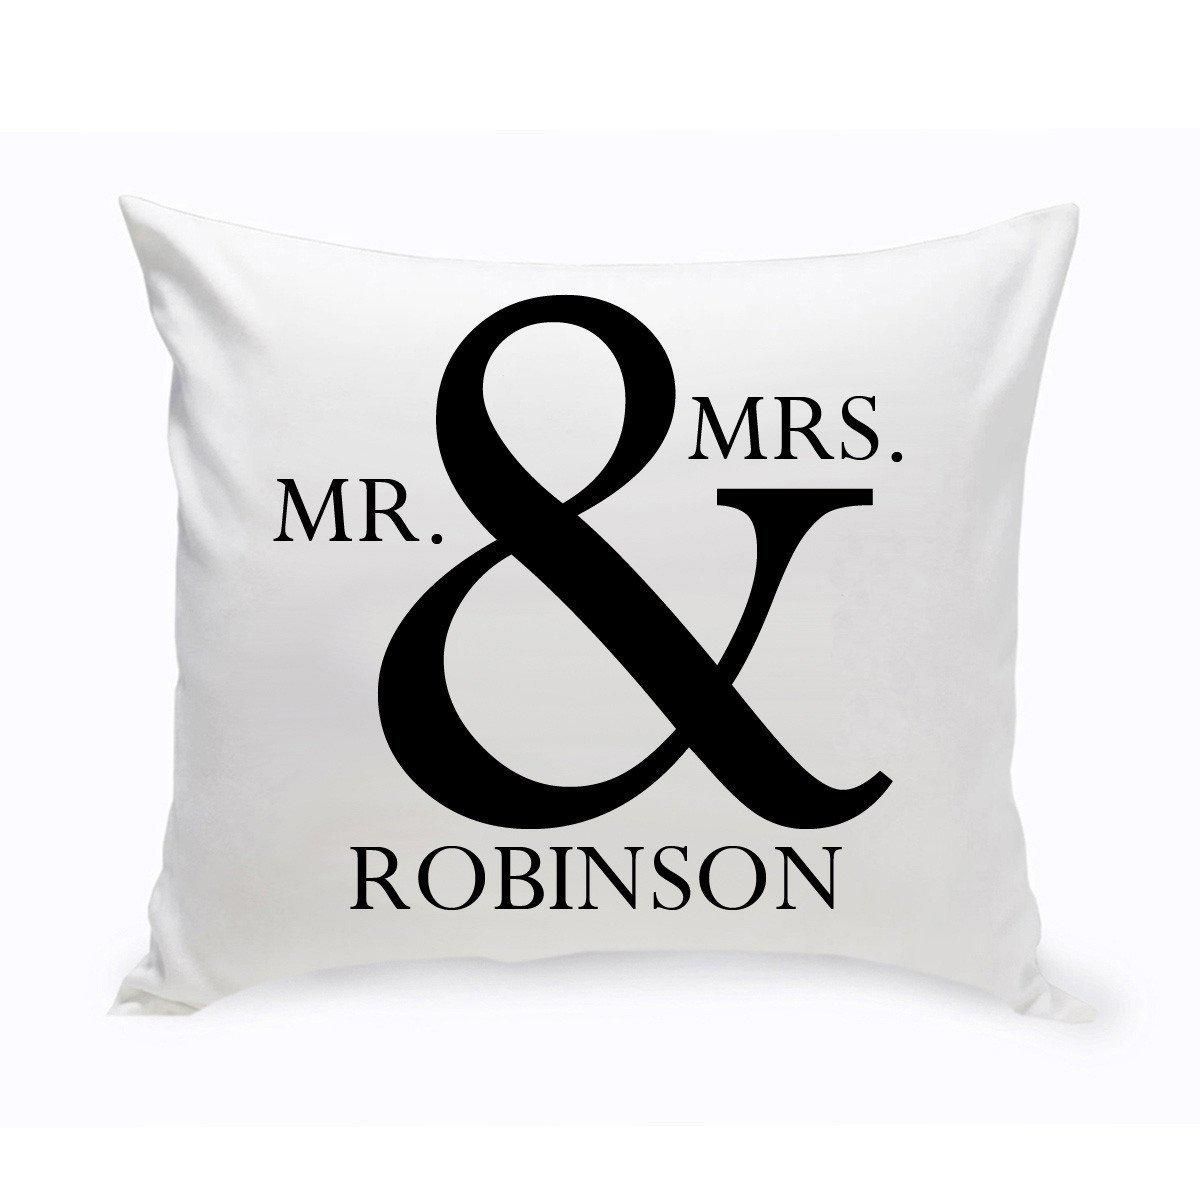 Personalized-Mr-Mrs-Throw-Pillow